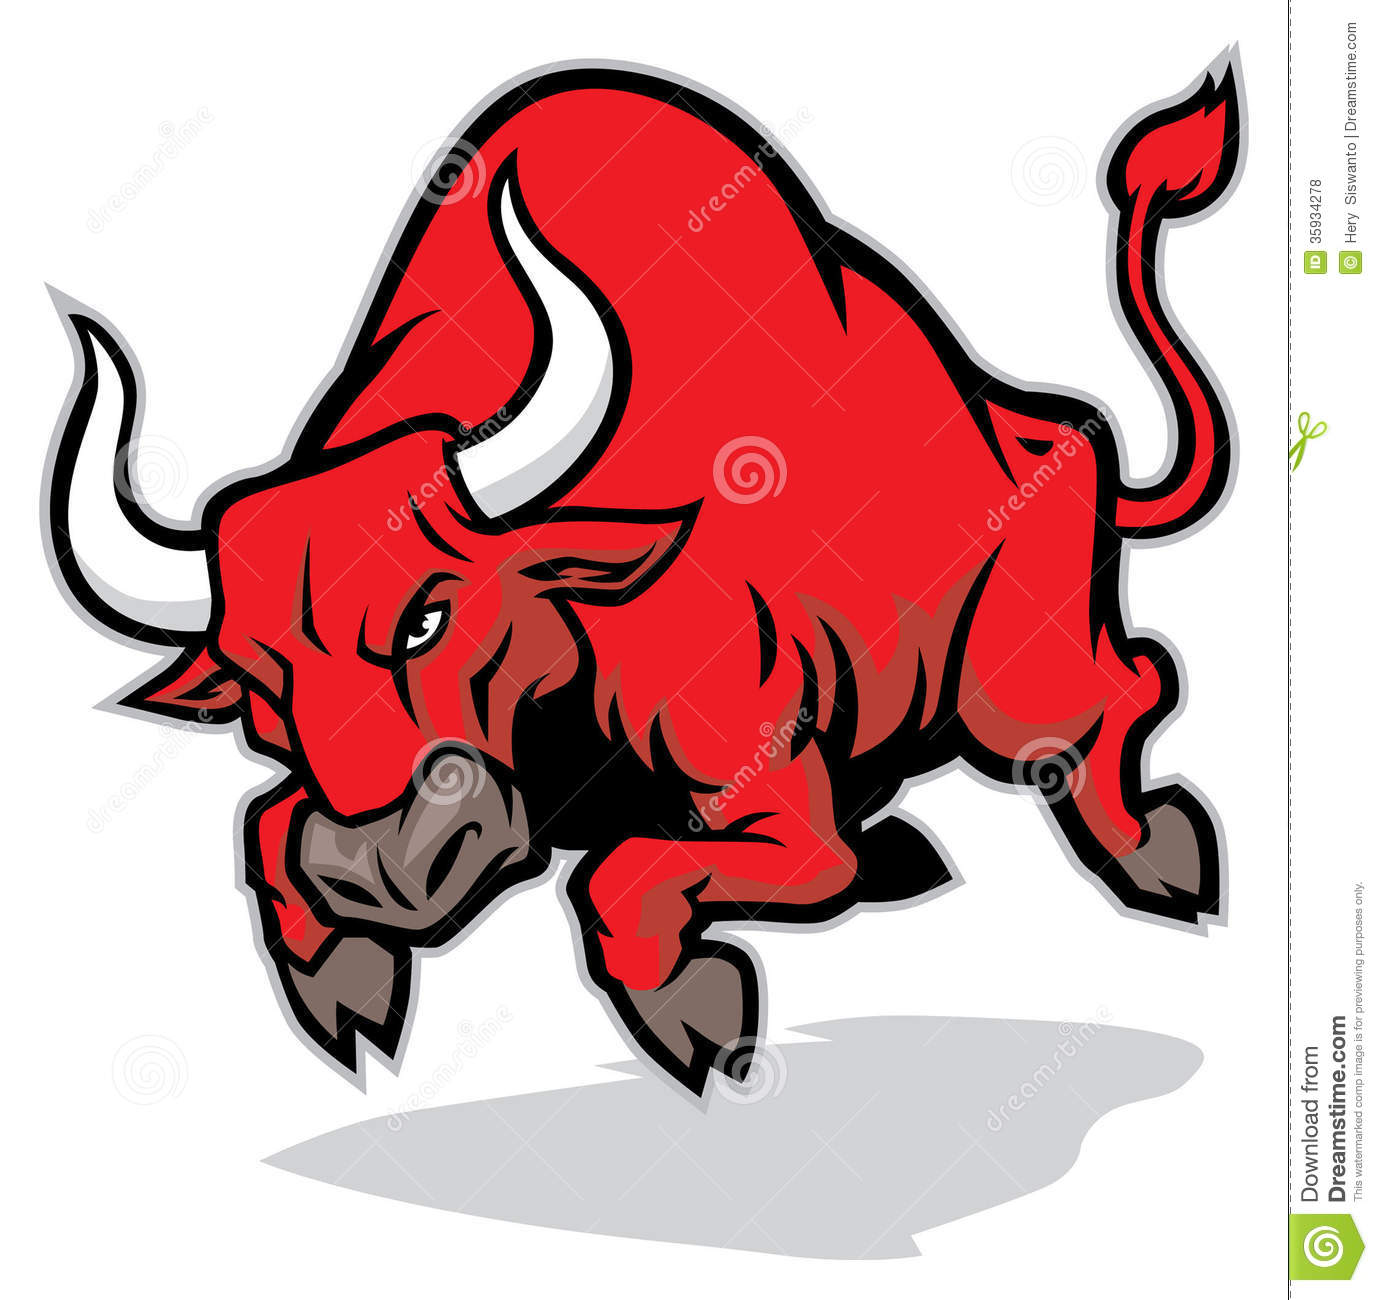 Angry Bull Clipart - Clipart Kid